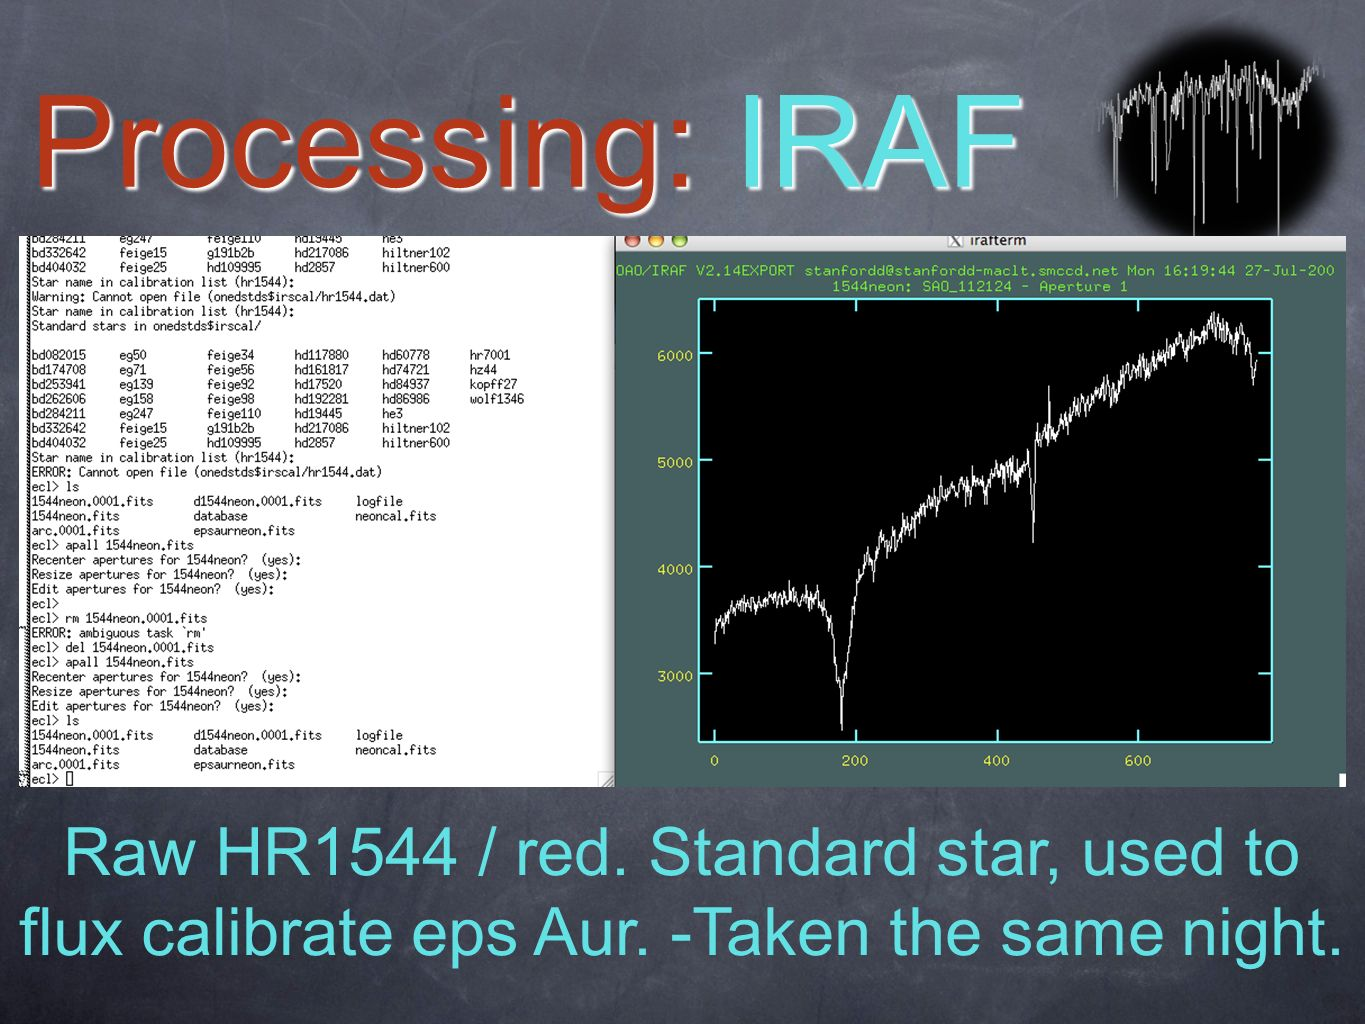 Raw HR1544 / red. Standard star, used to flux calibrate eps Aur.